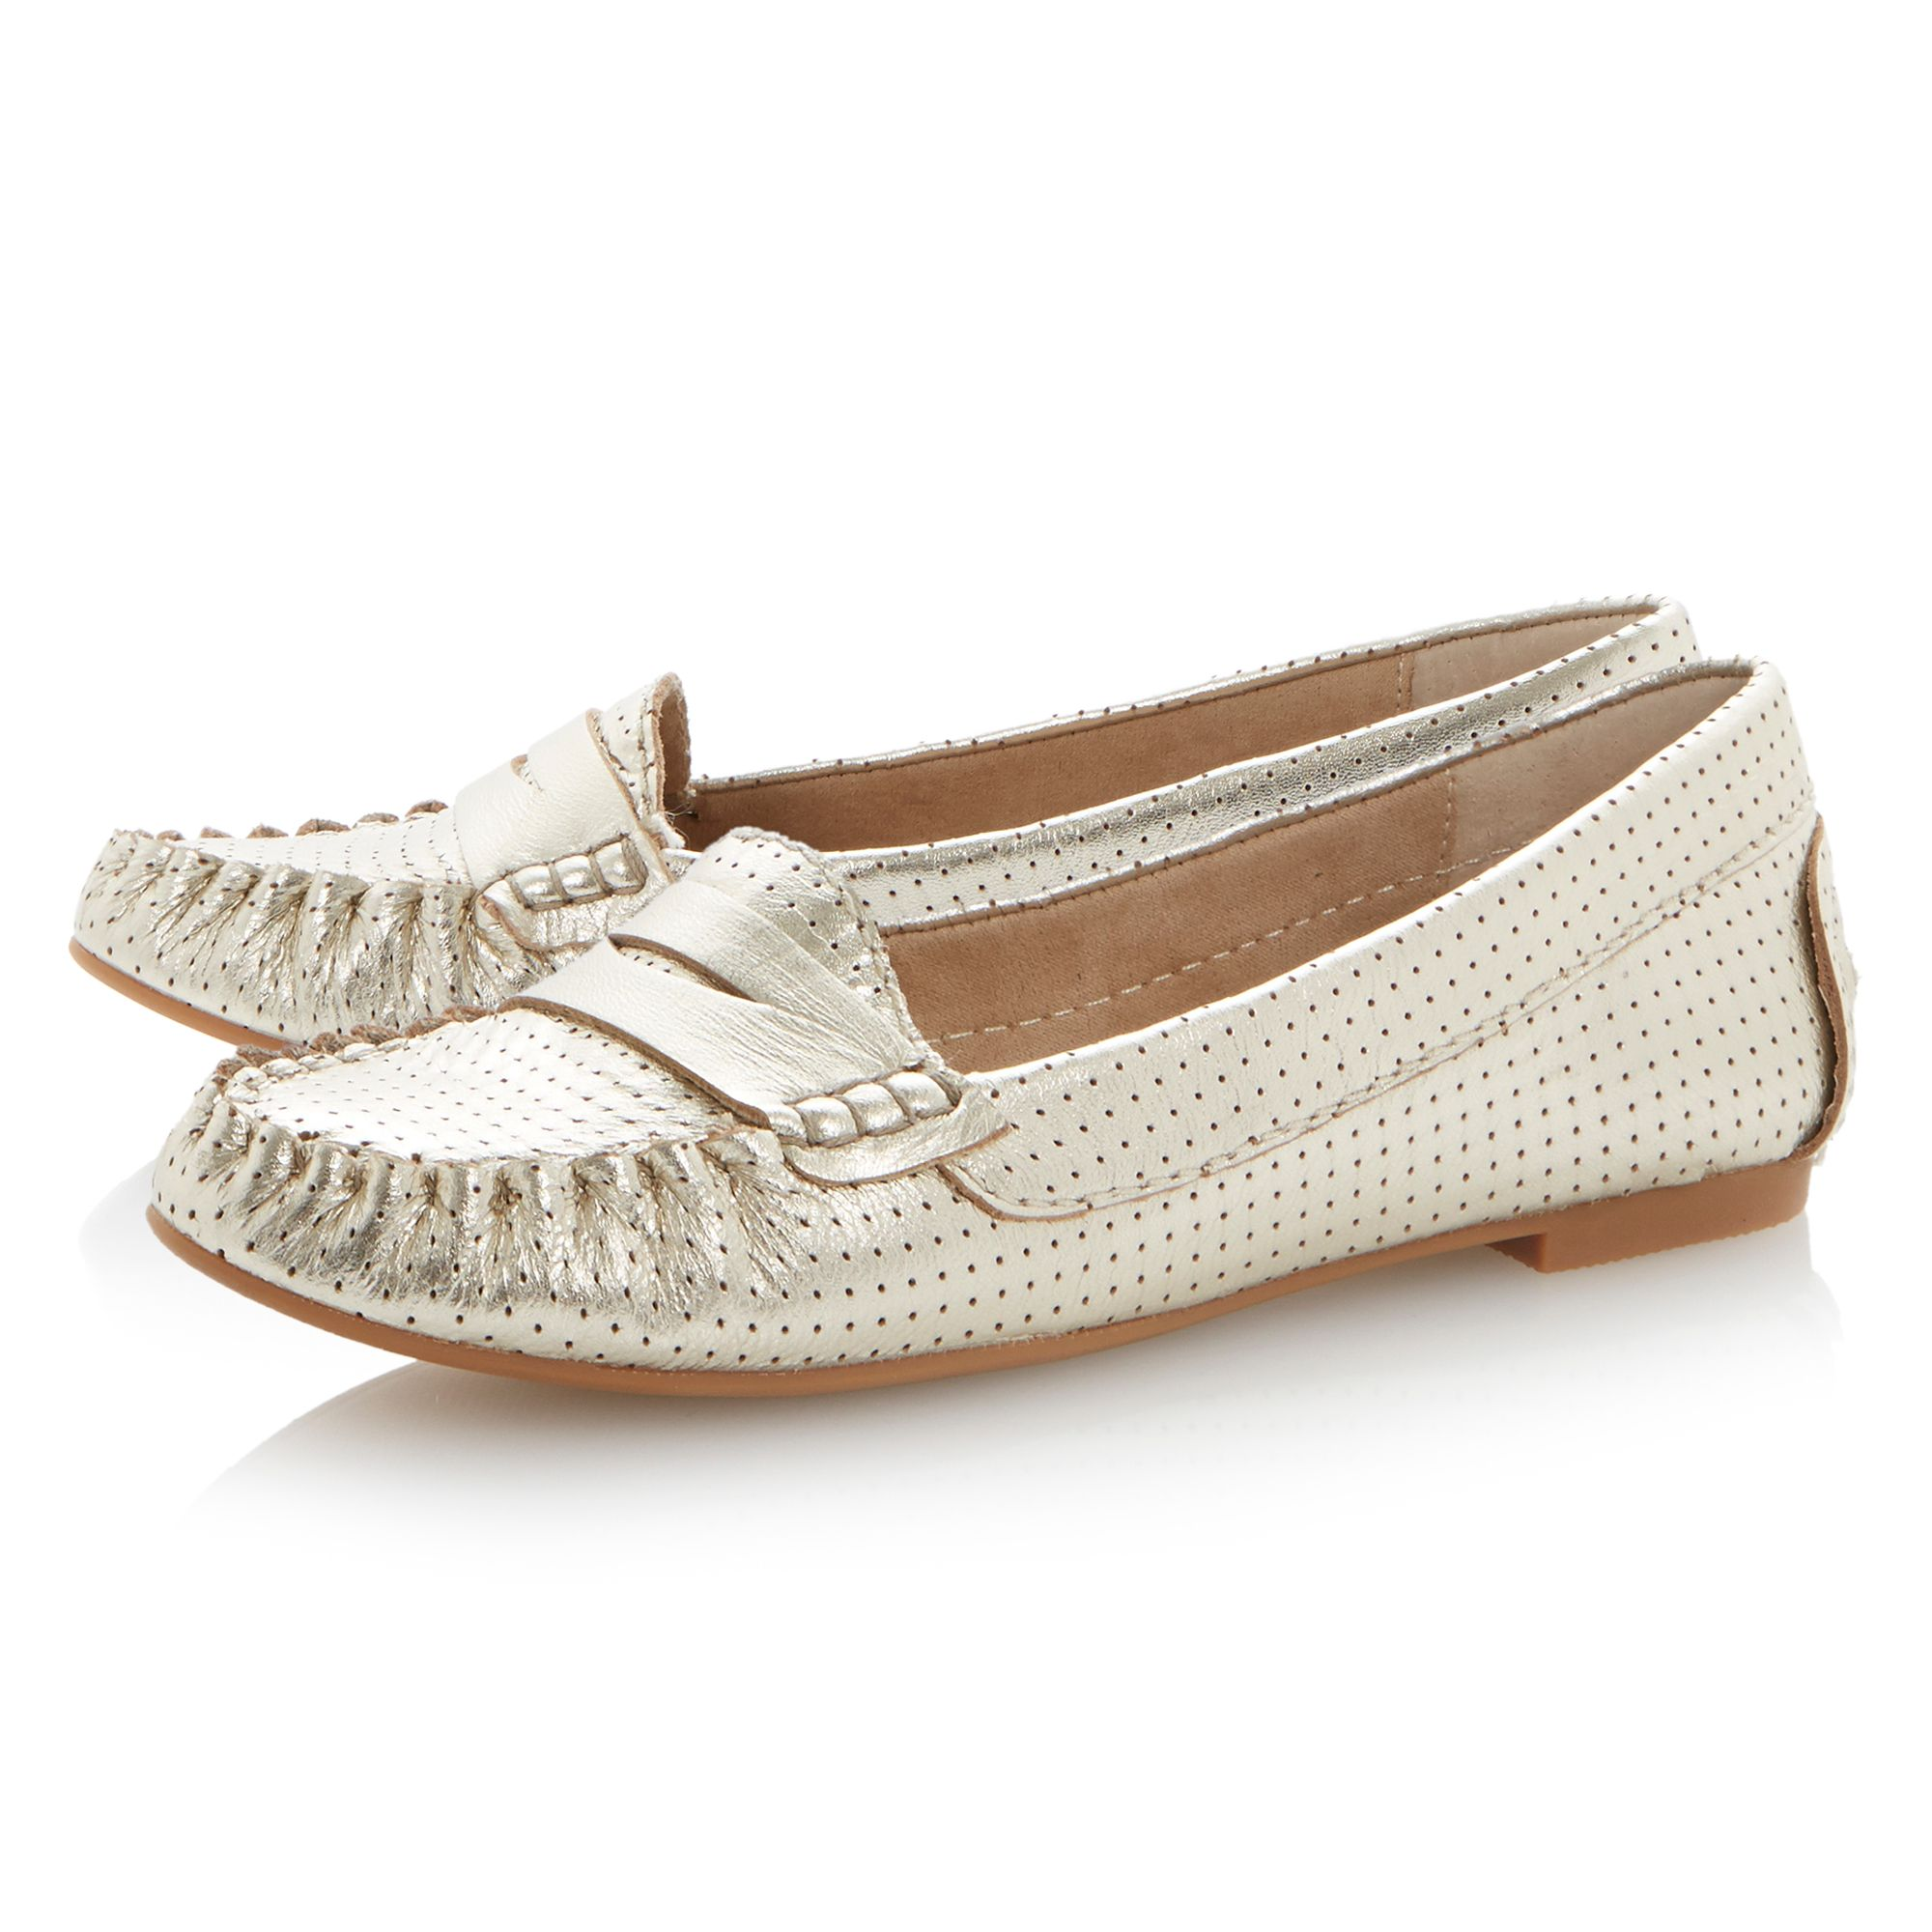 Murphey almond toe saddle flat loafer shoes